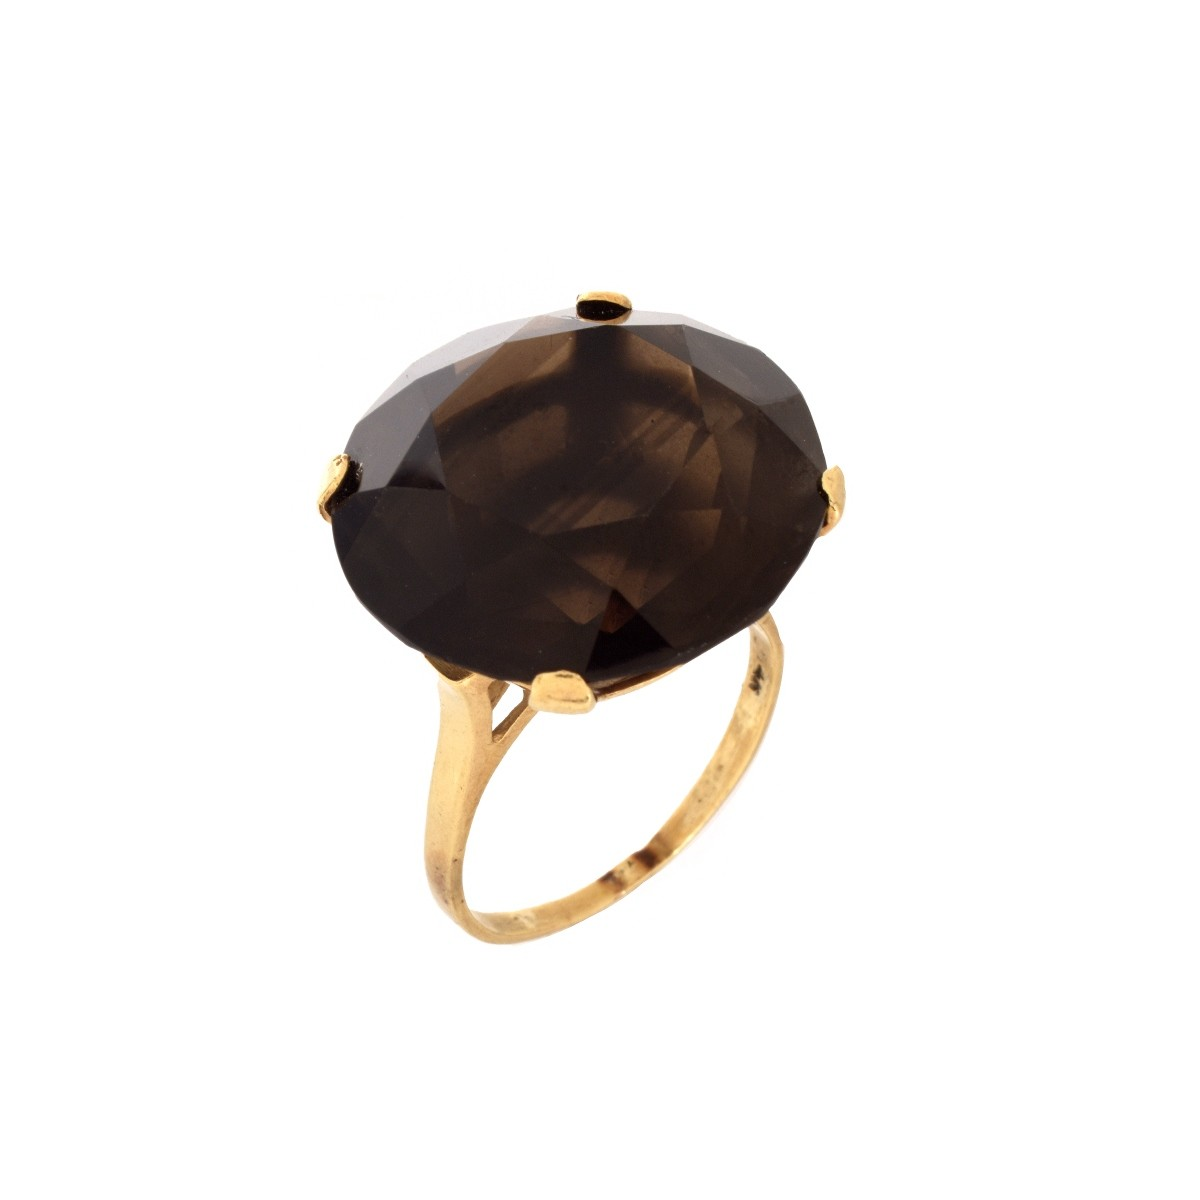 Smokey Quartz and 14K Ring